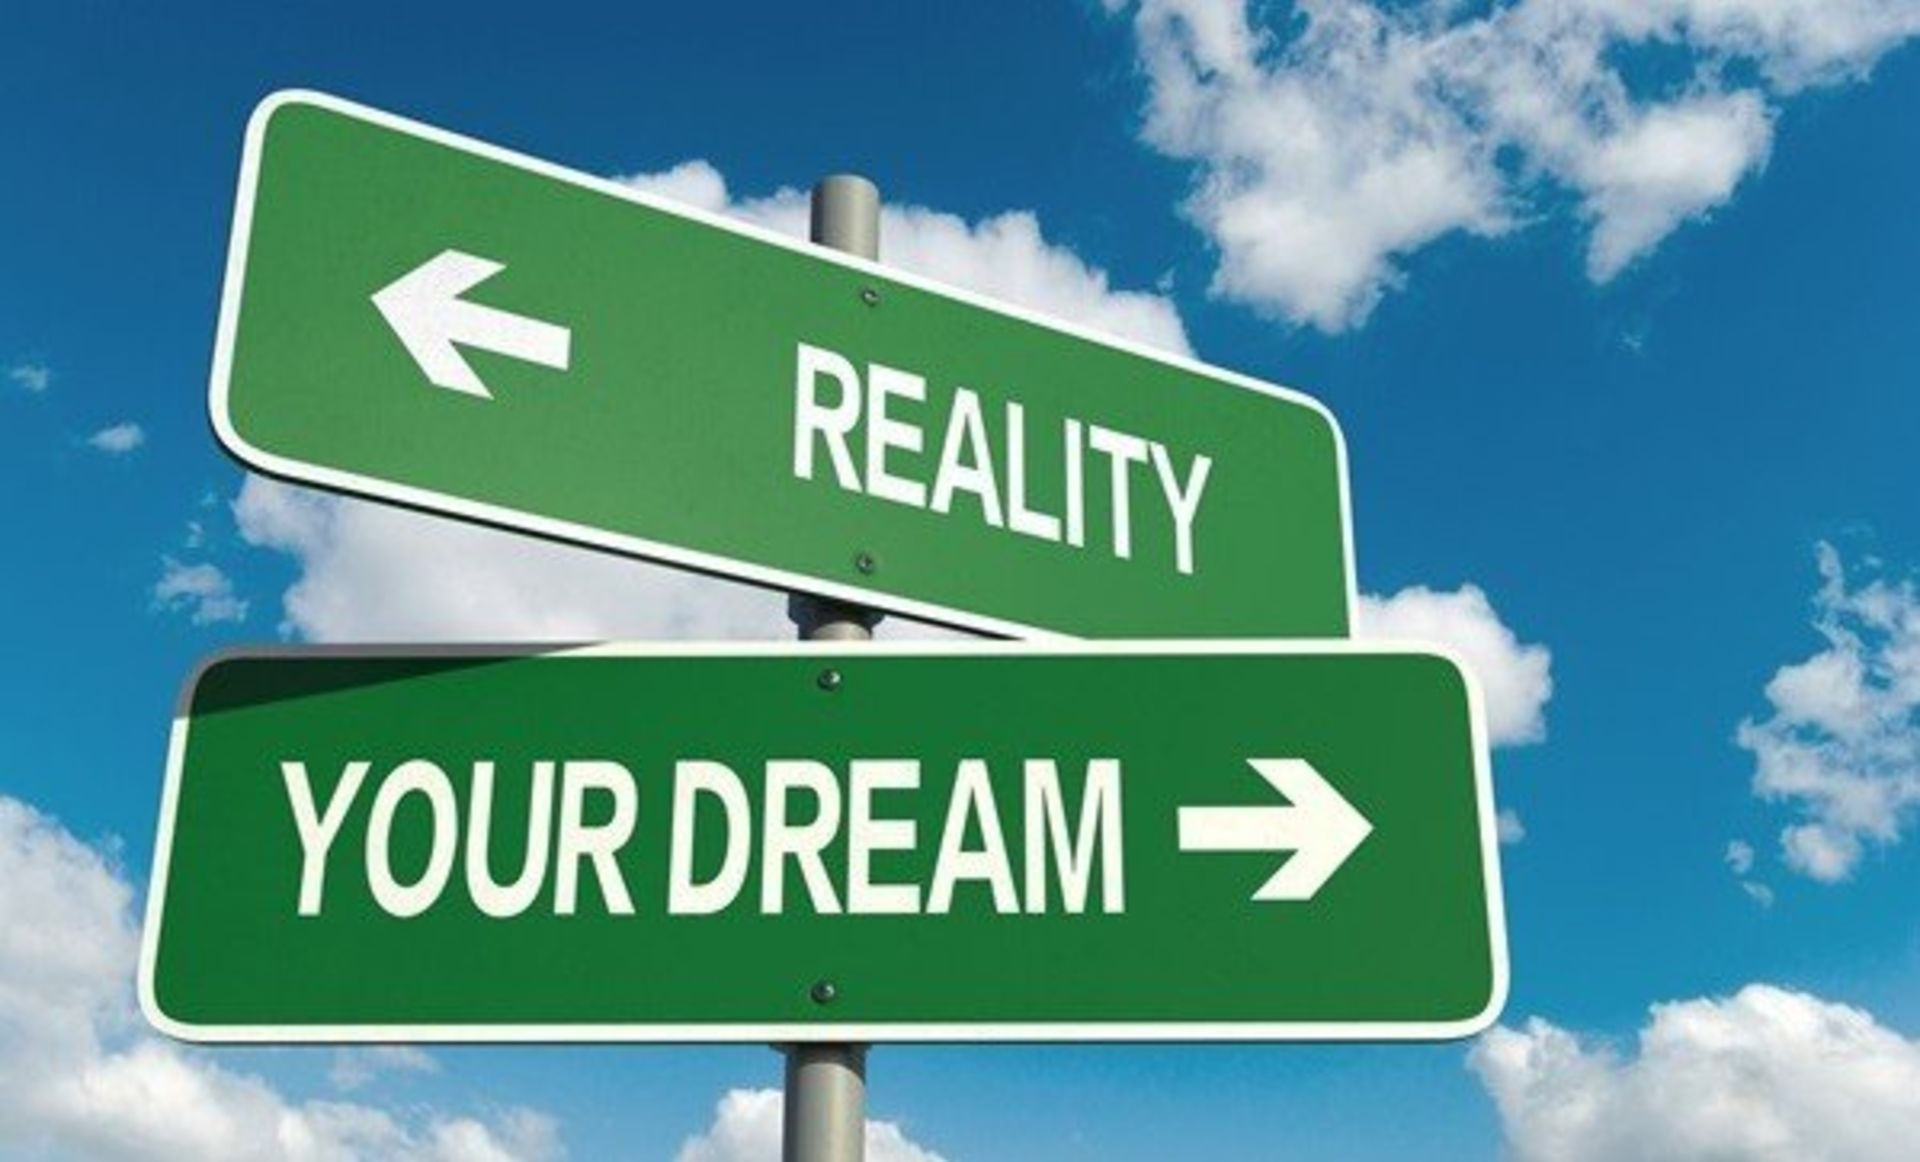 Make Your Dreams A Reality